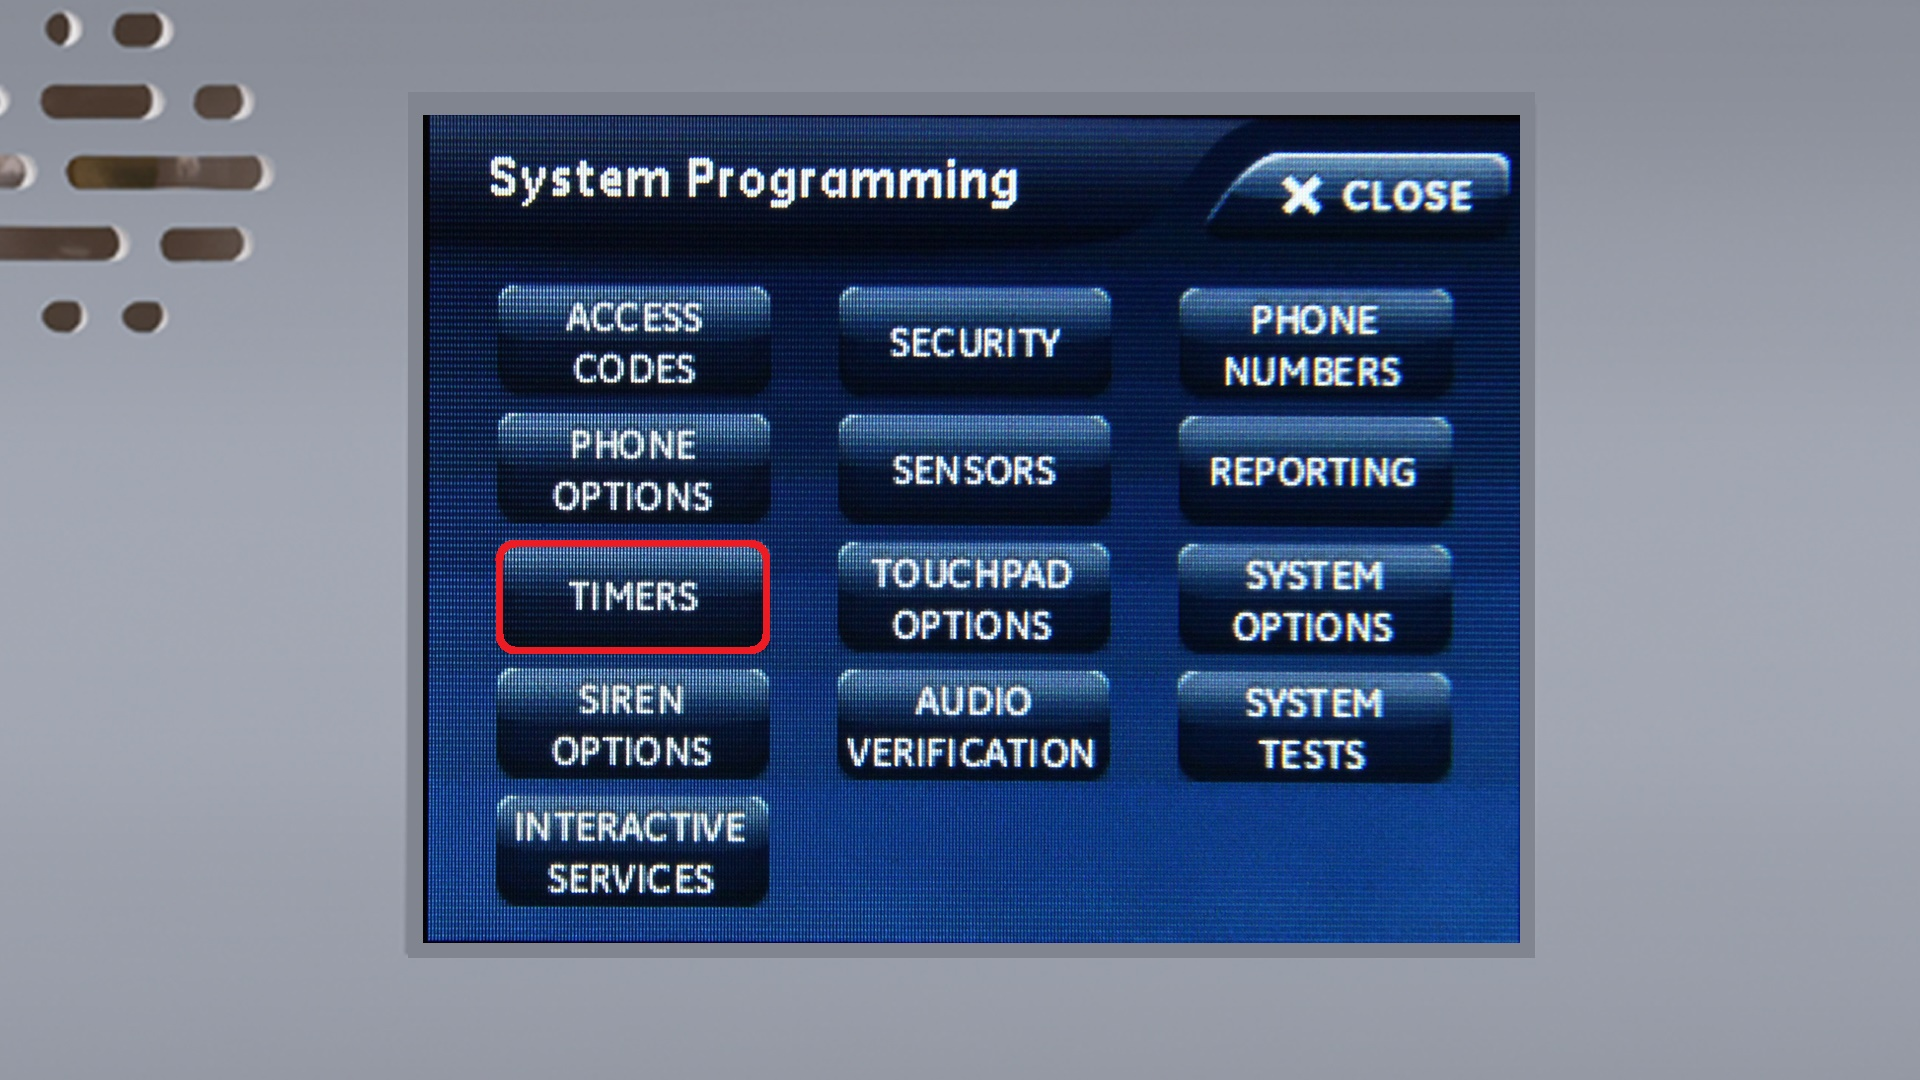 xtis-system-programming_Red_timers_.jpg